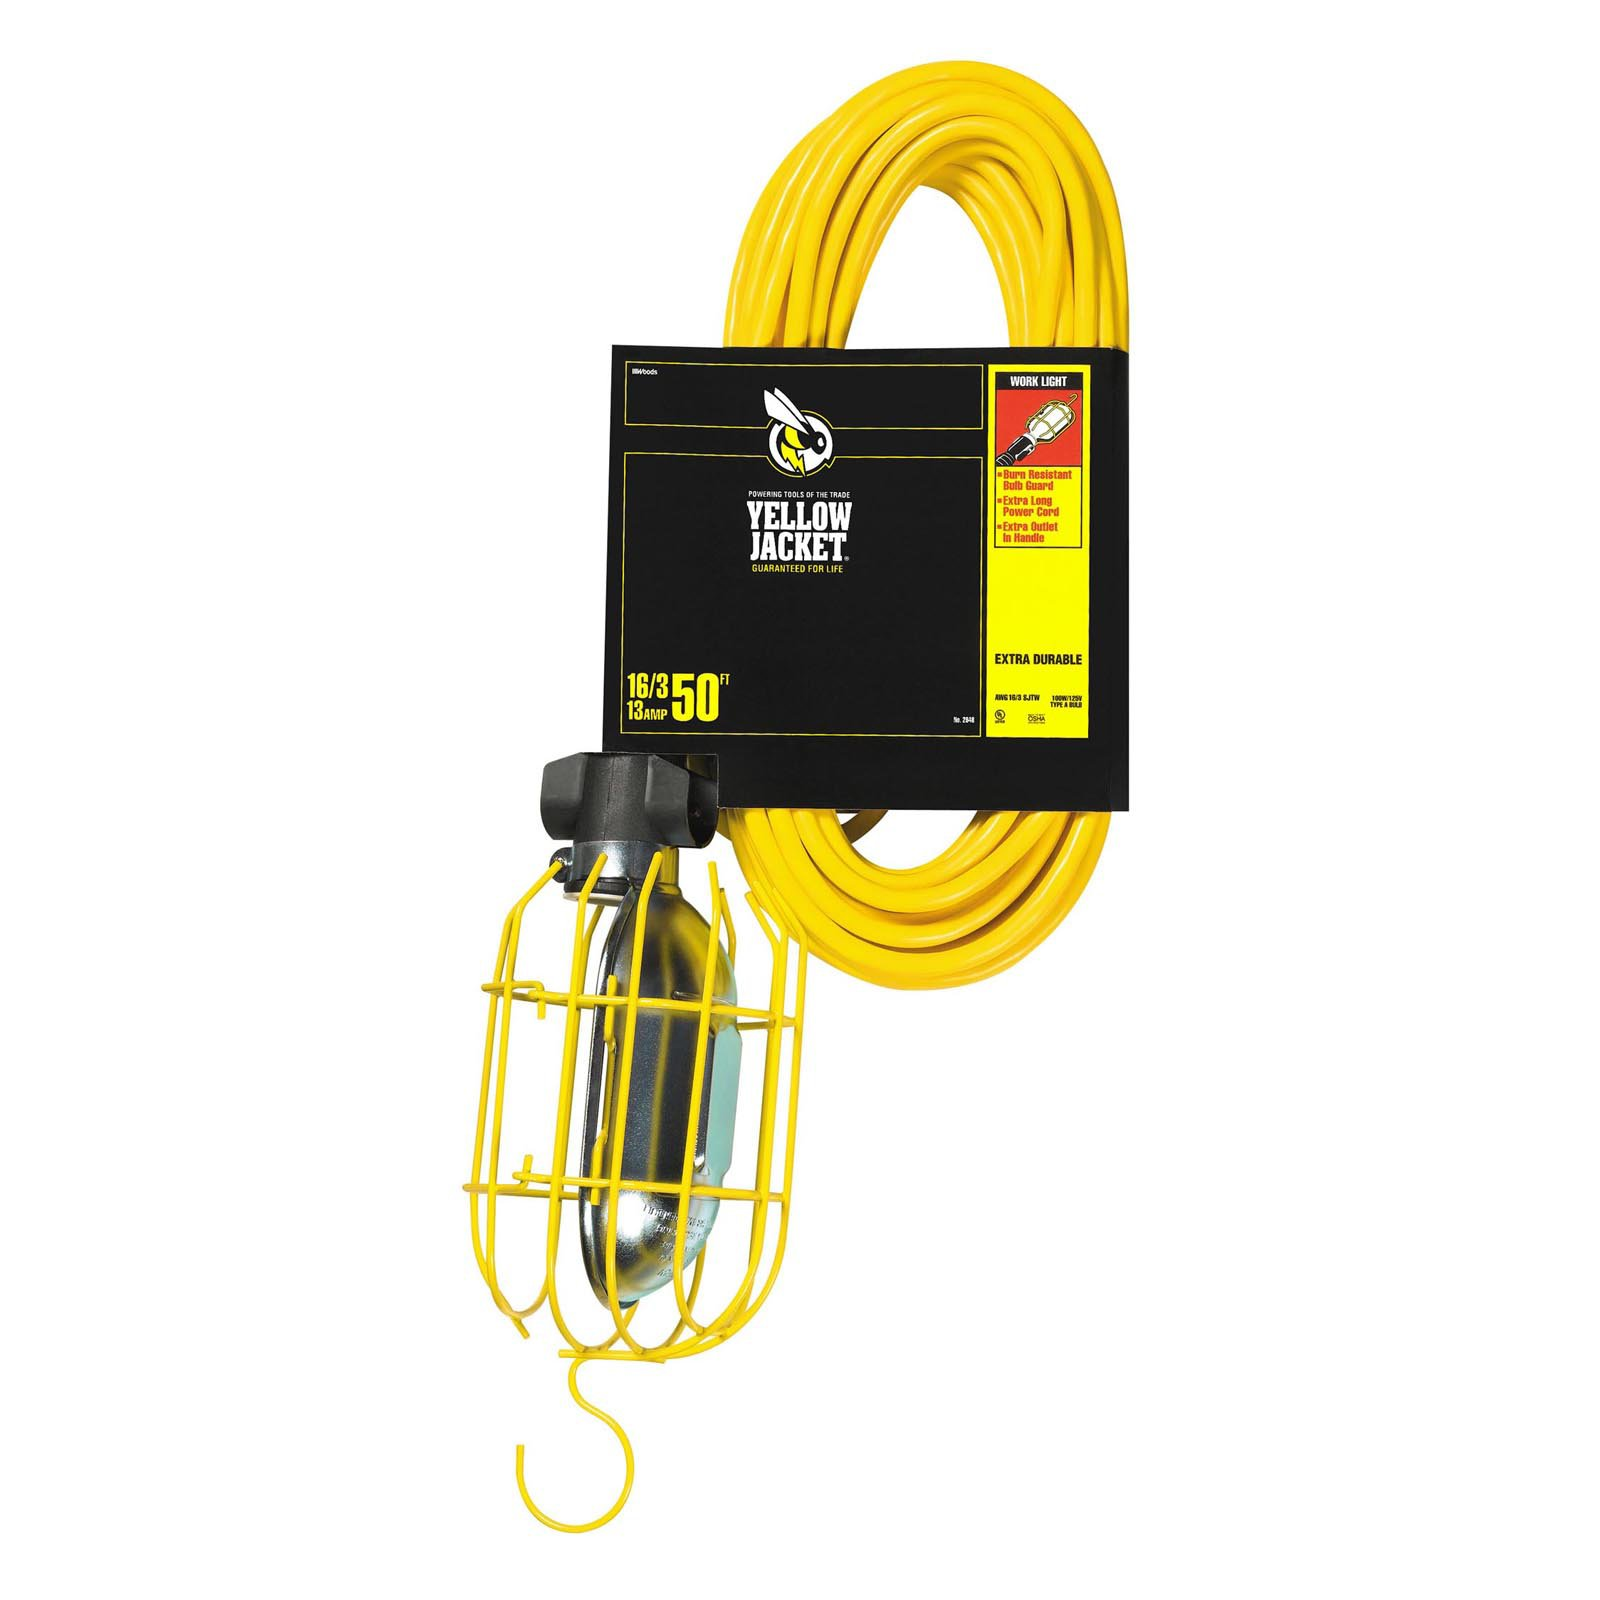 Yellow Jacket 2948 16/3 SJTW Trouble Light Work Light with Metal Guard and Outlet, 50'